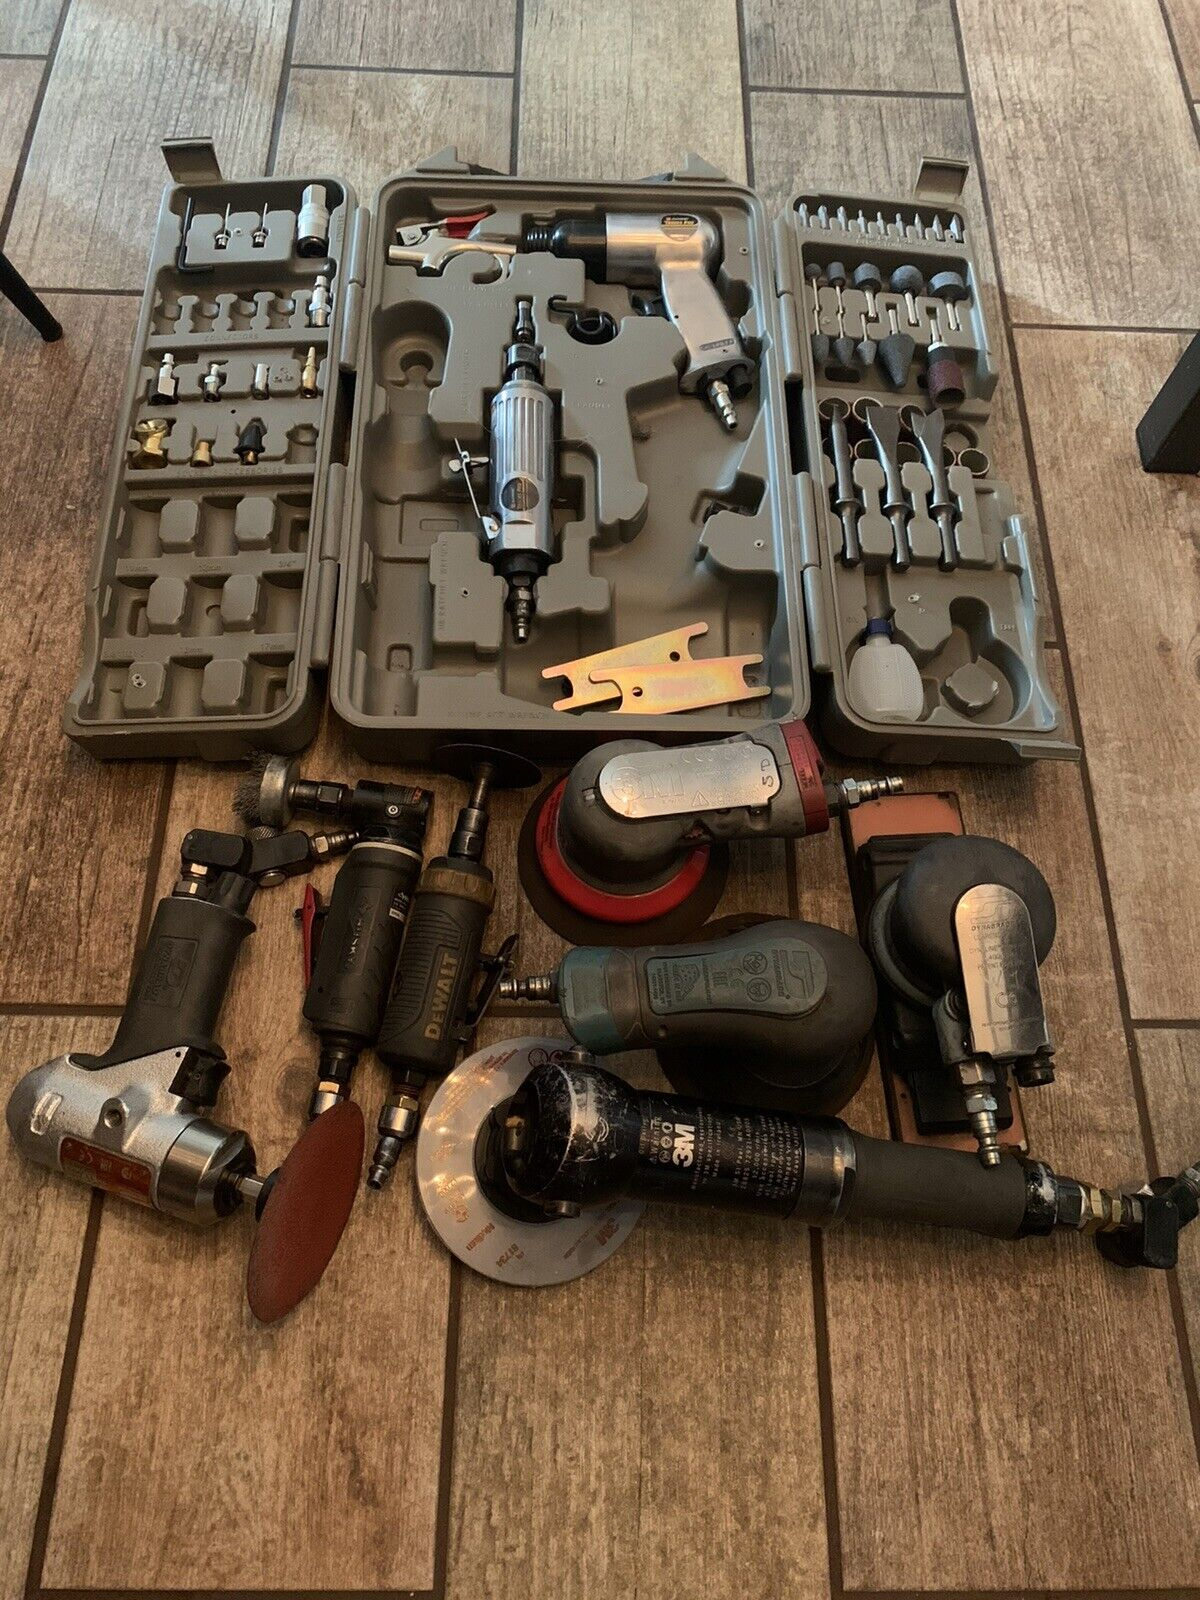 Used pneumatic tools.